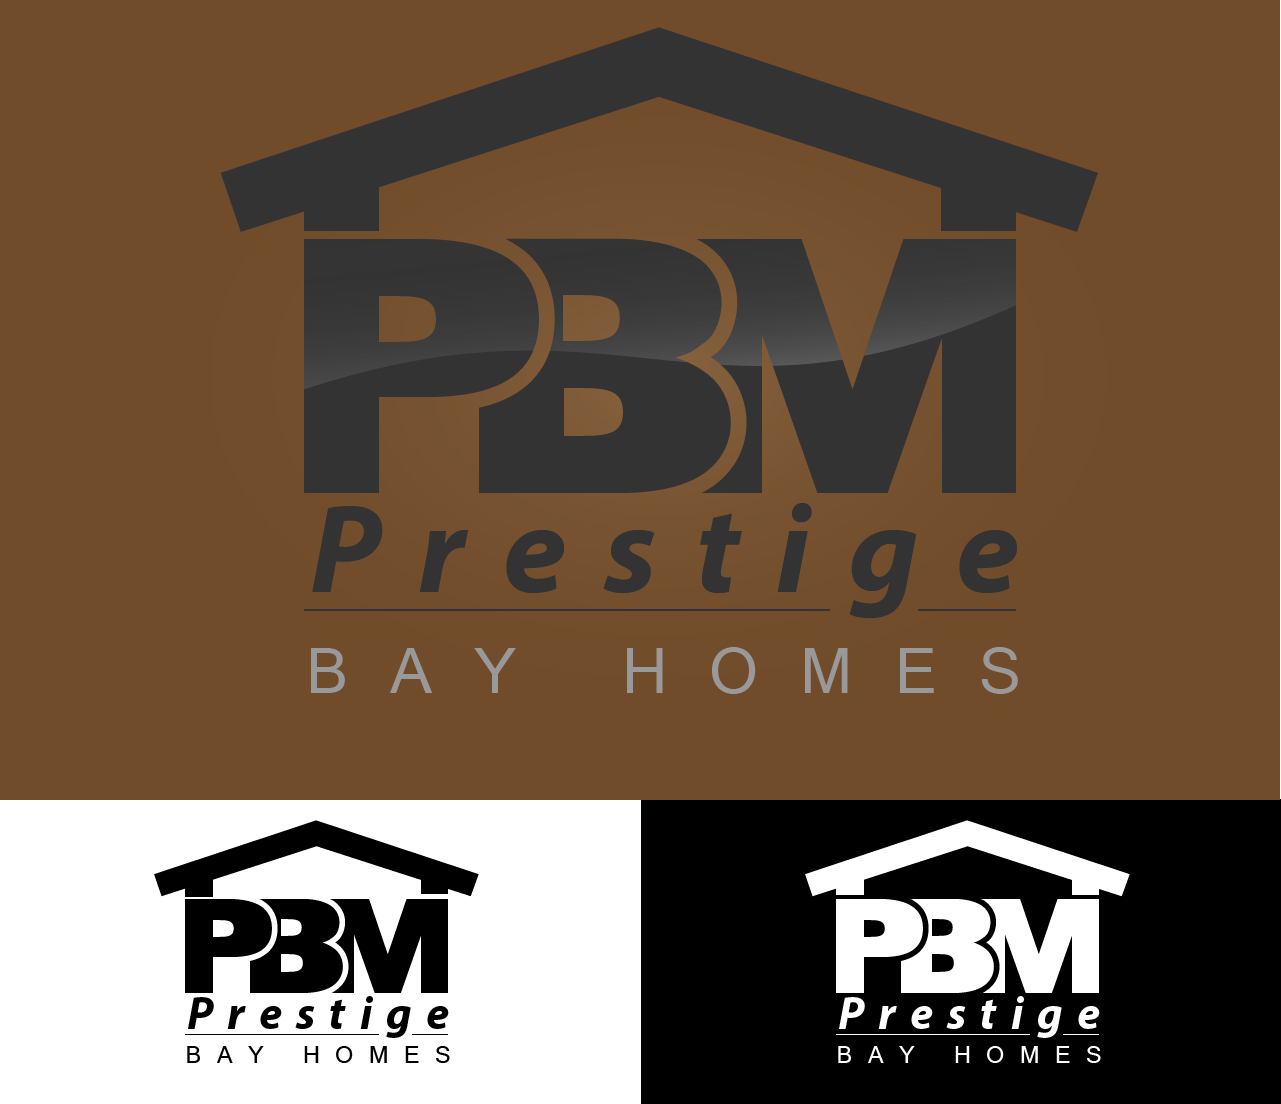 Logo Design by Adnane Zarouk - Entry No. 52 in the Logo Design Contest Imaginative Logo Design for Prestige Bay Homes.